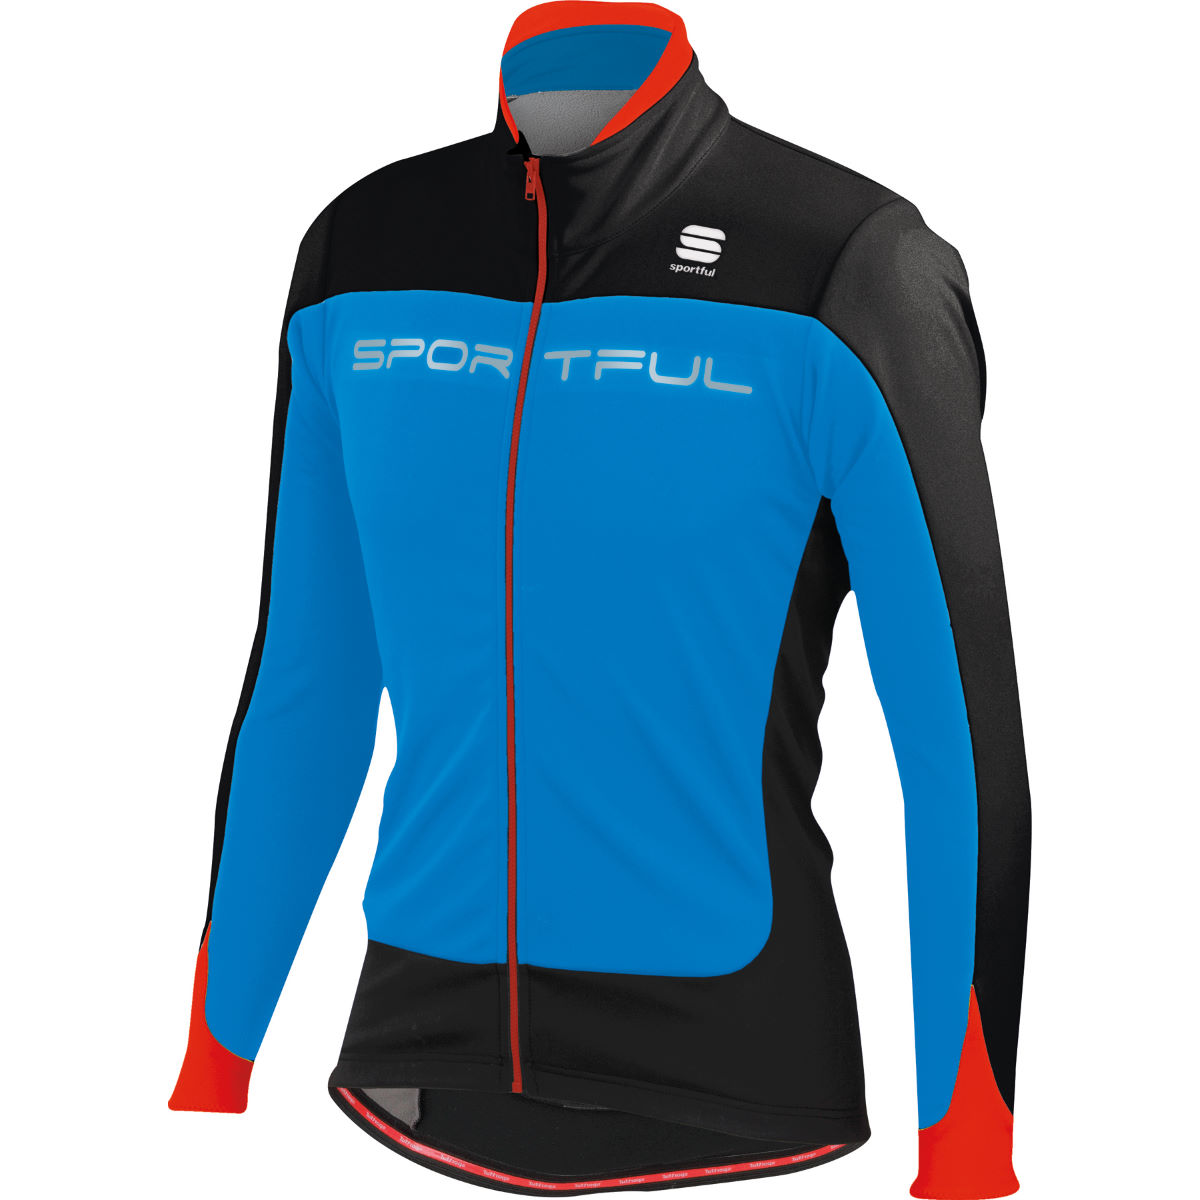 Veste Sportful Flash Softshell - S Blue/Black/Red Coupe-vents vélo